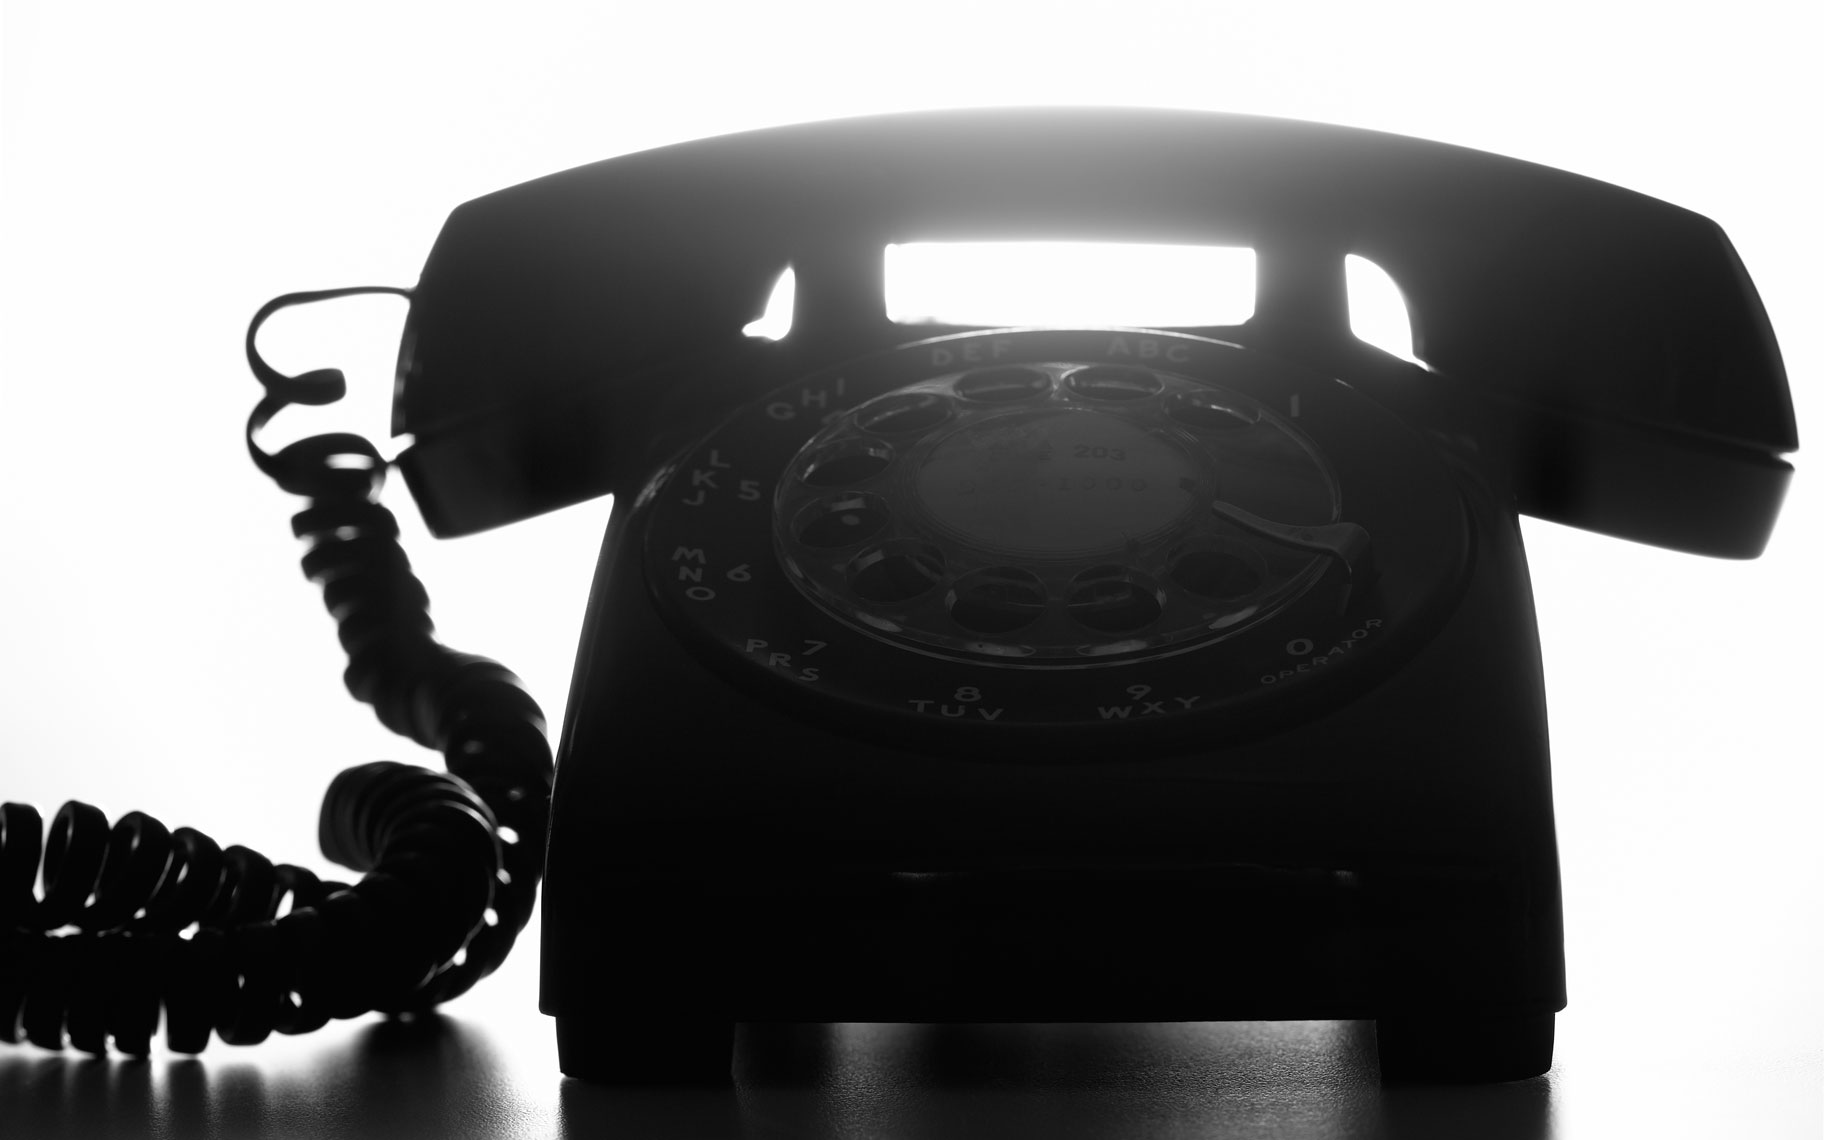 Rotary Dial Phone